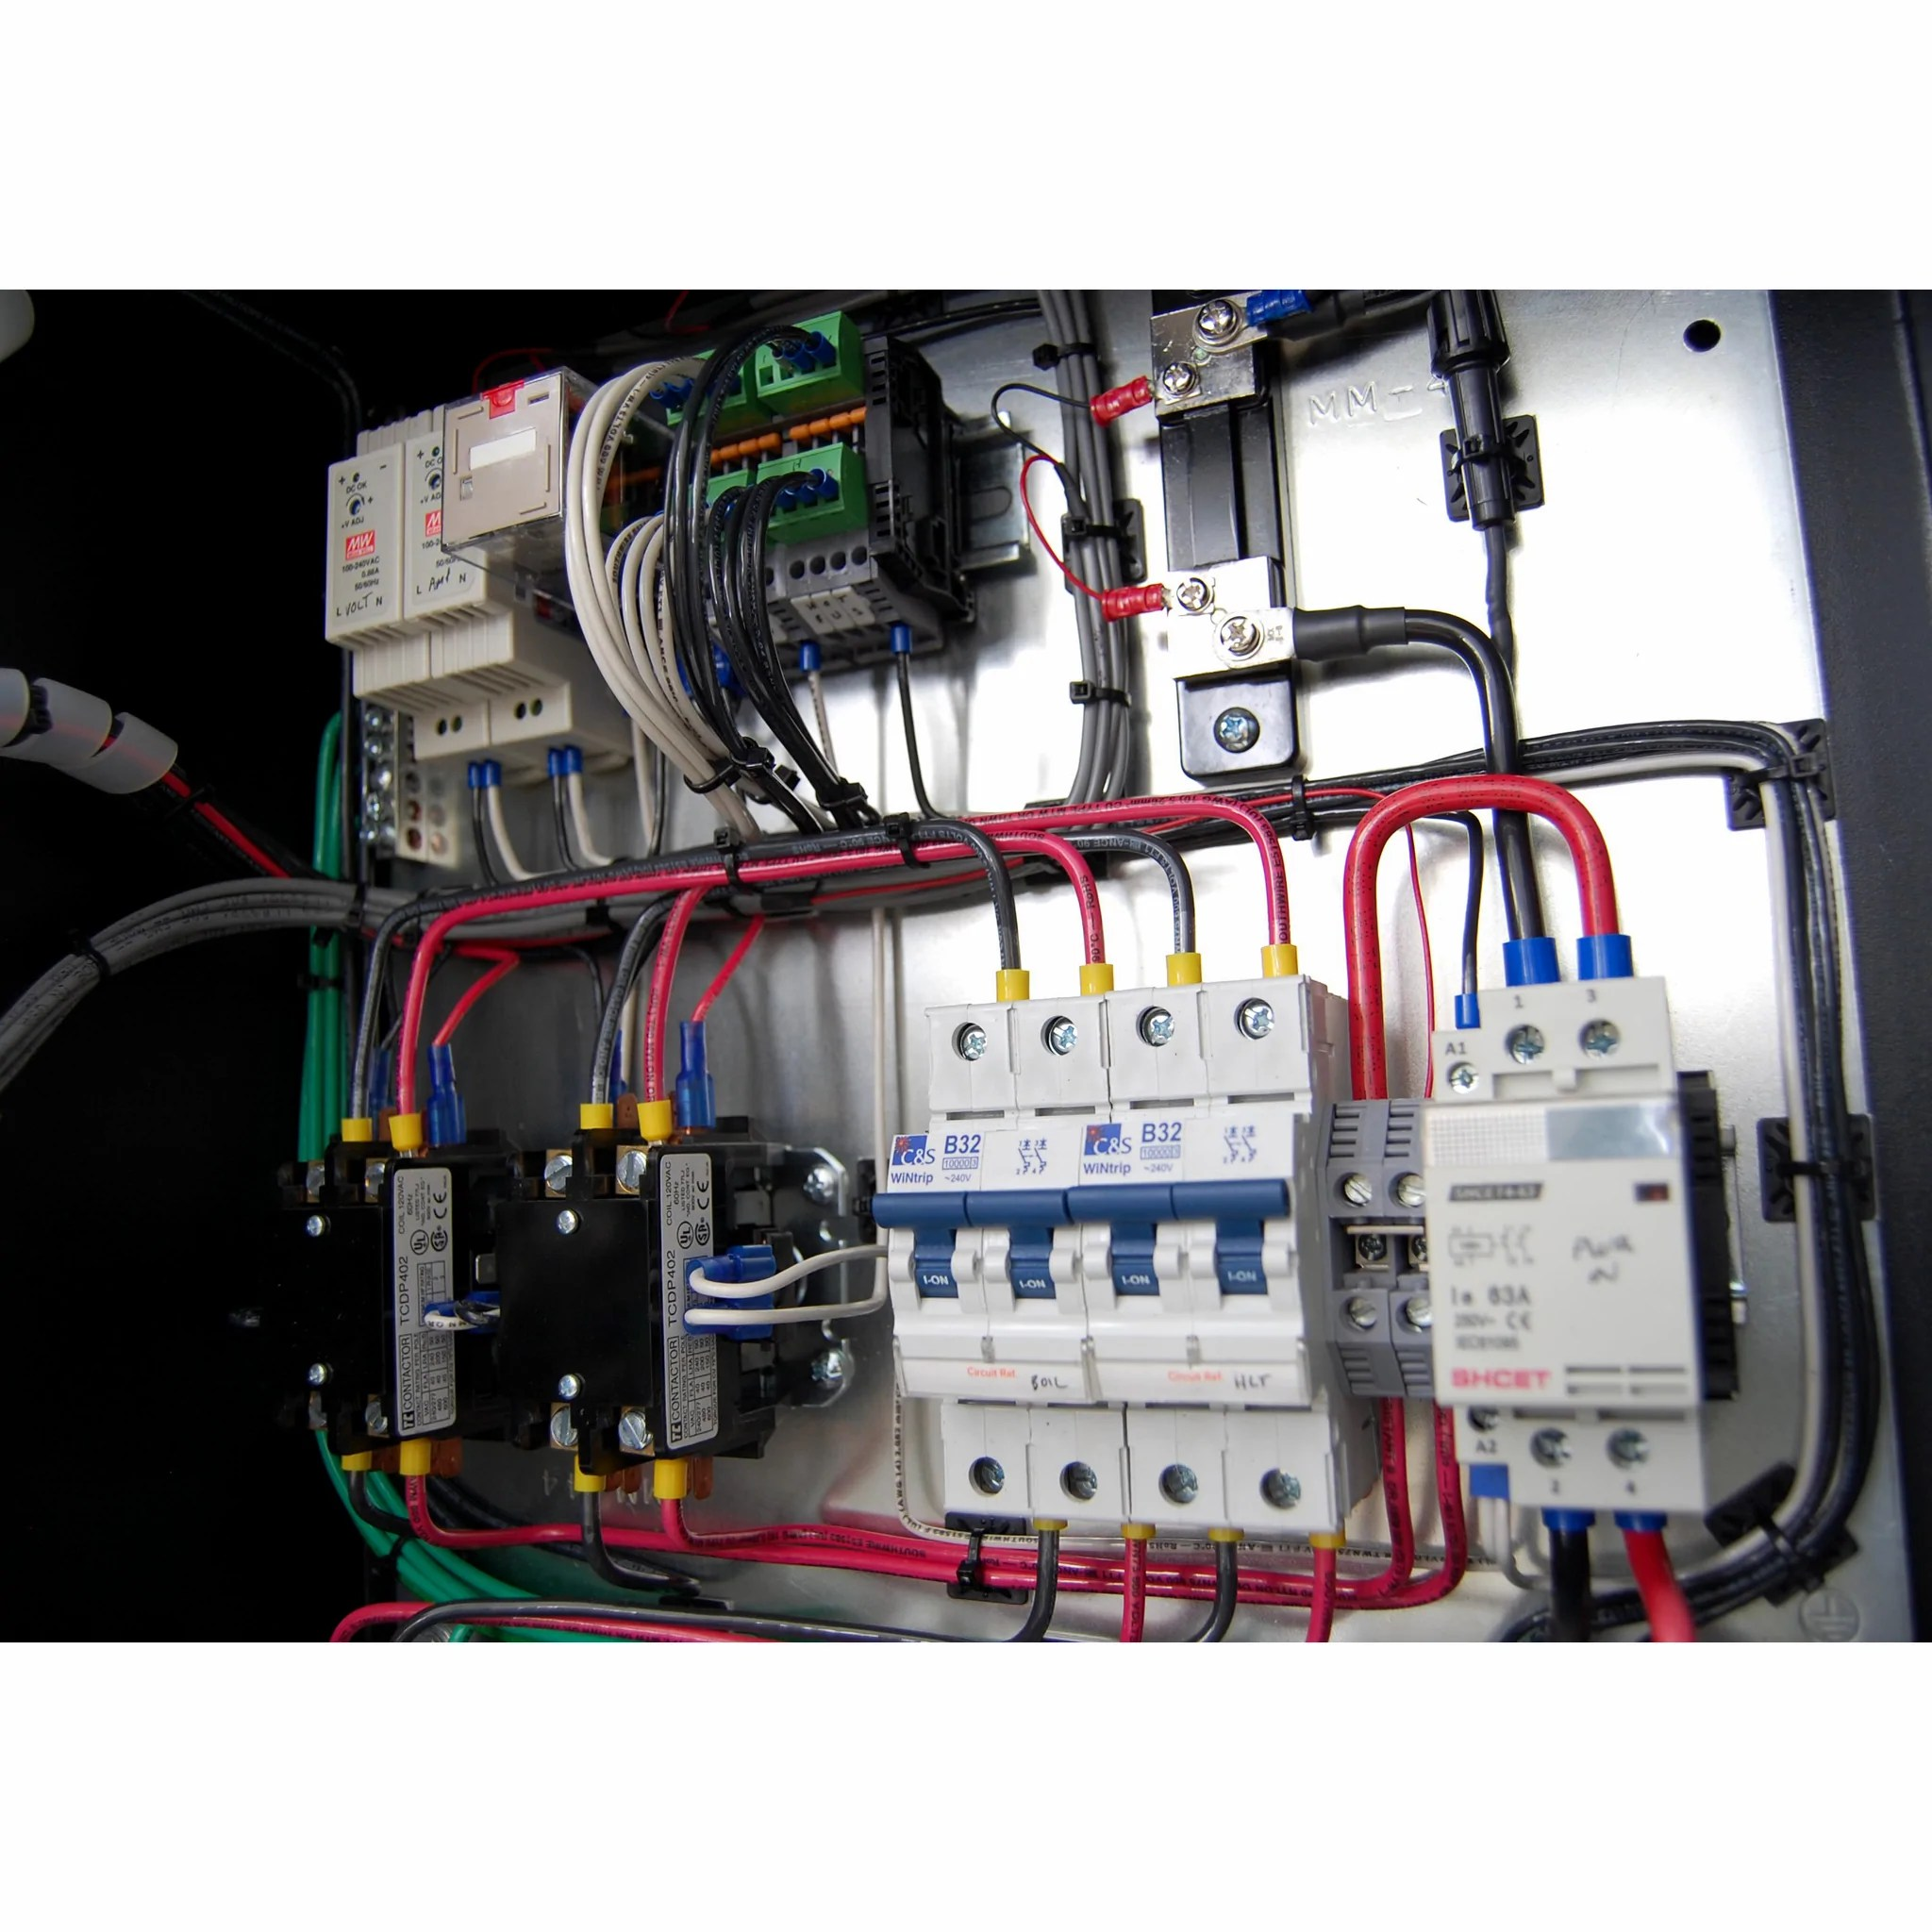 hight resolution of back wiring electrical panel wiring diagram view back wiring electrical panel